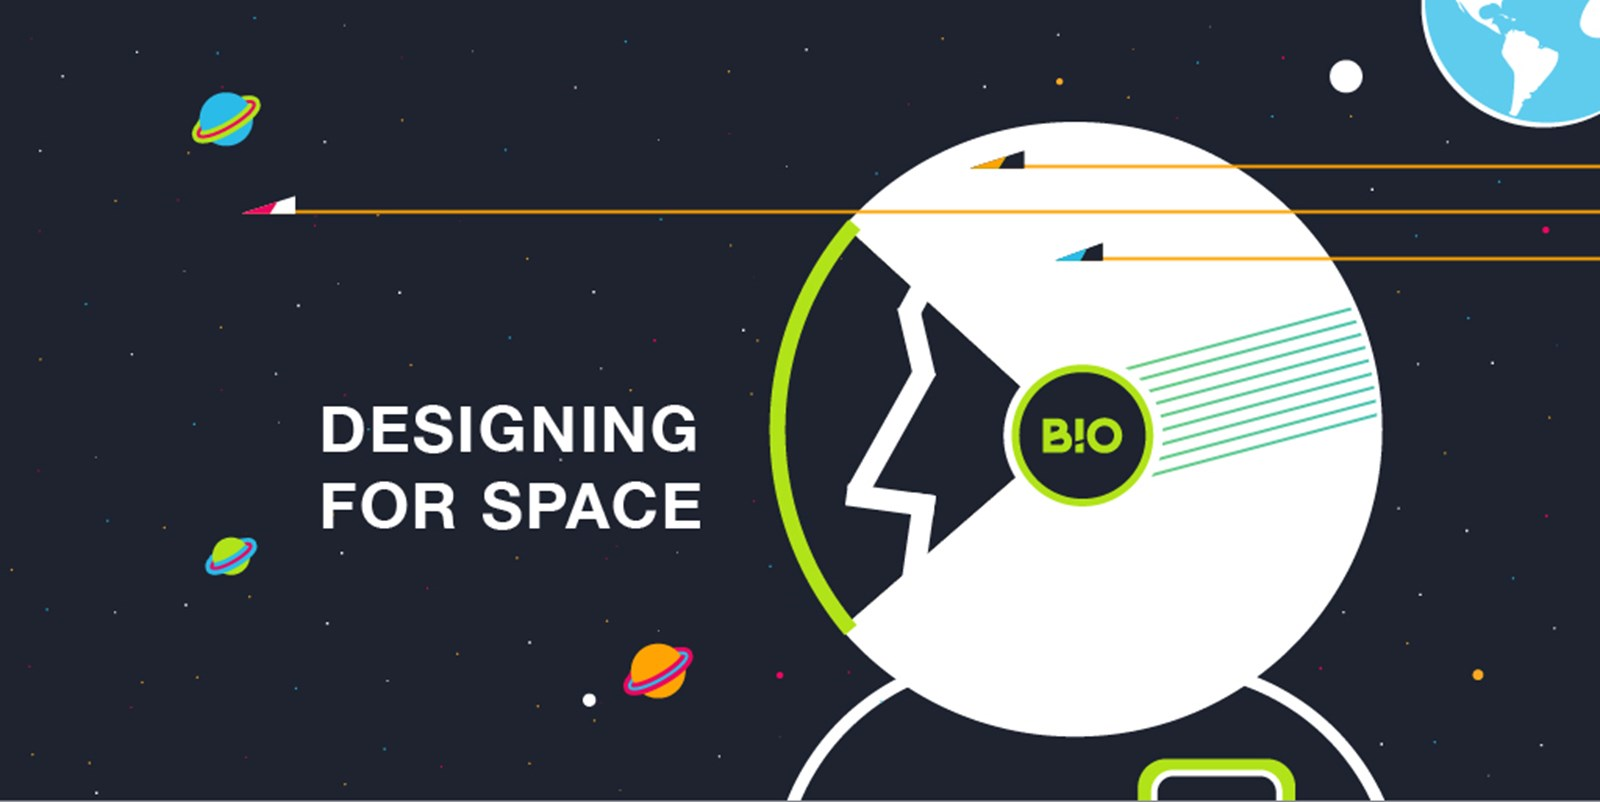 Guest post: The Psychology of adaption and design in space